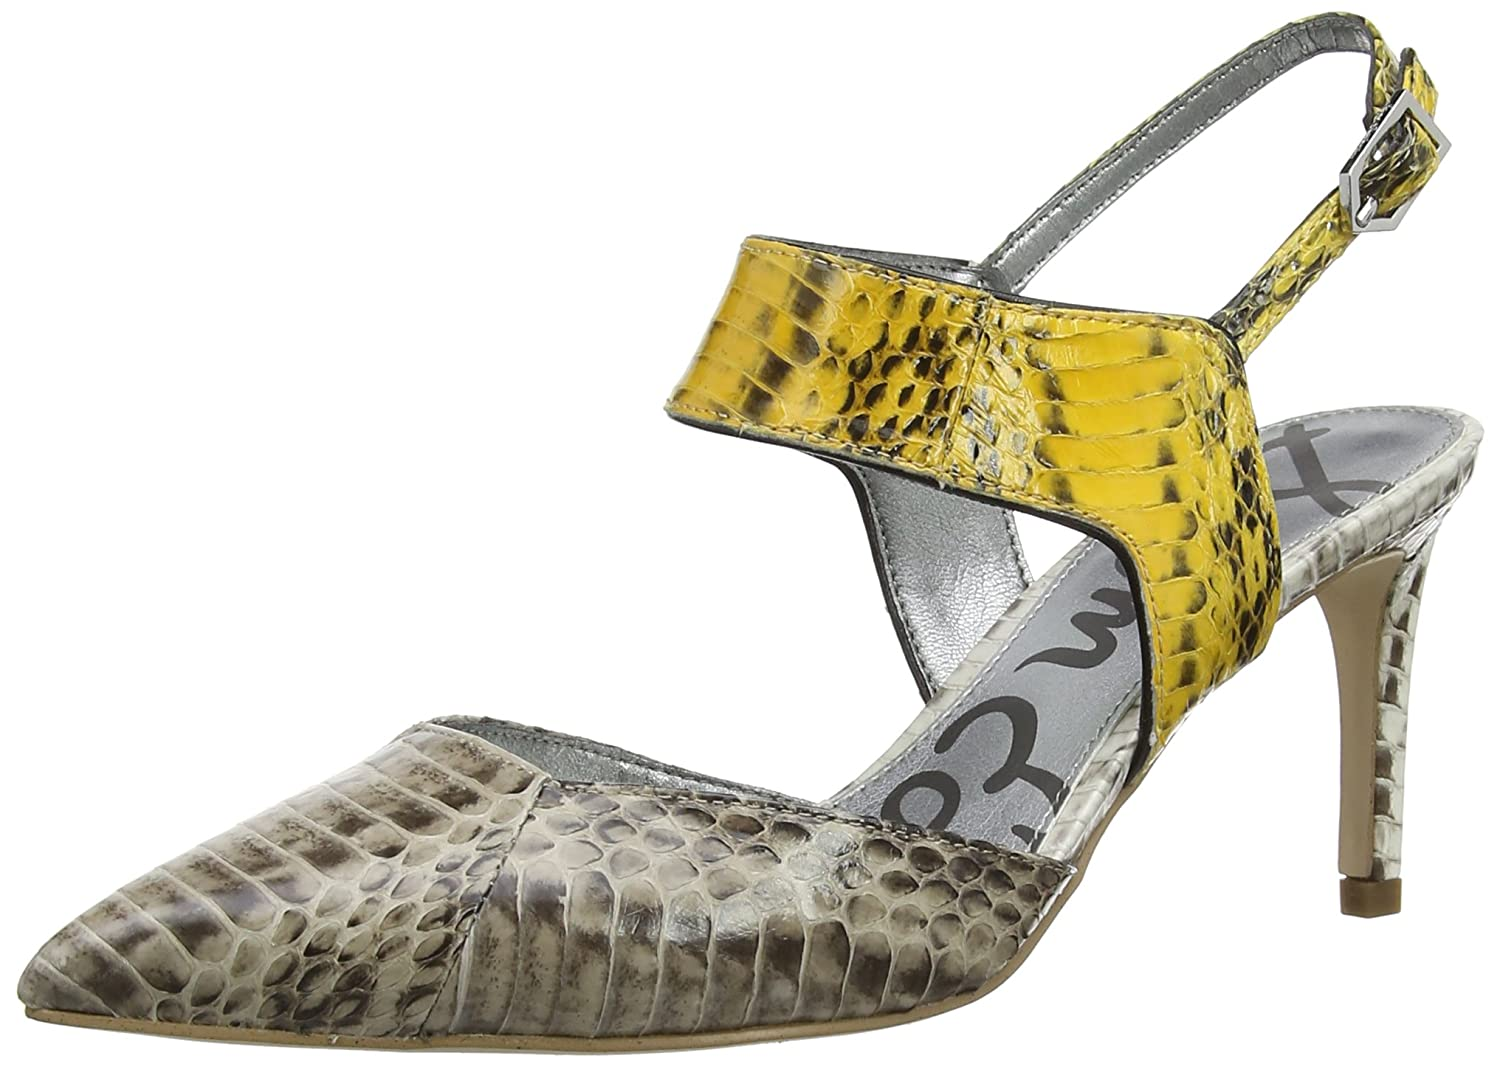 Sam Edelman Women's Ola Dress Pump, Bistro/Marigold, 7 M US: Buy Online at  Low Prices in India - Amazon.in